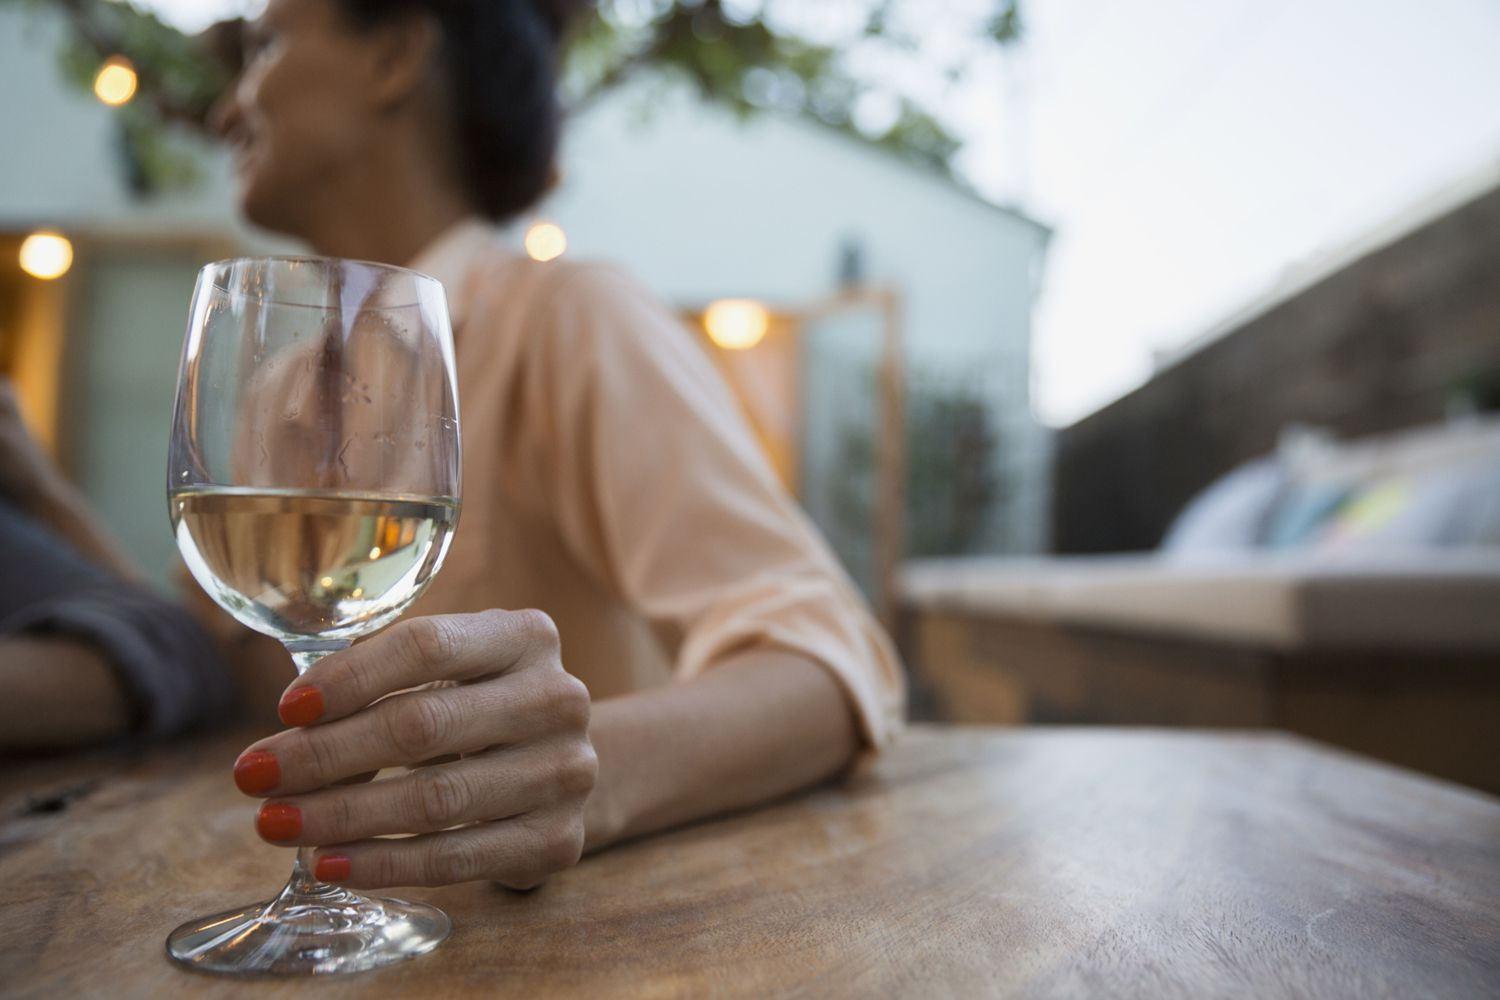 Drinking Alcohol Lowers Blood Sugar